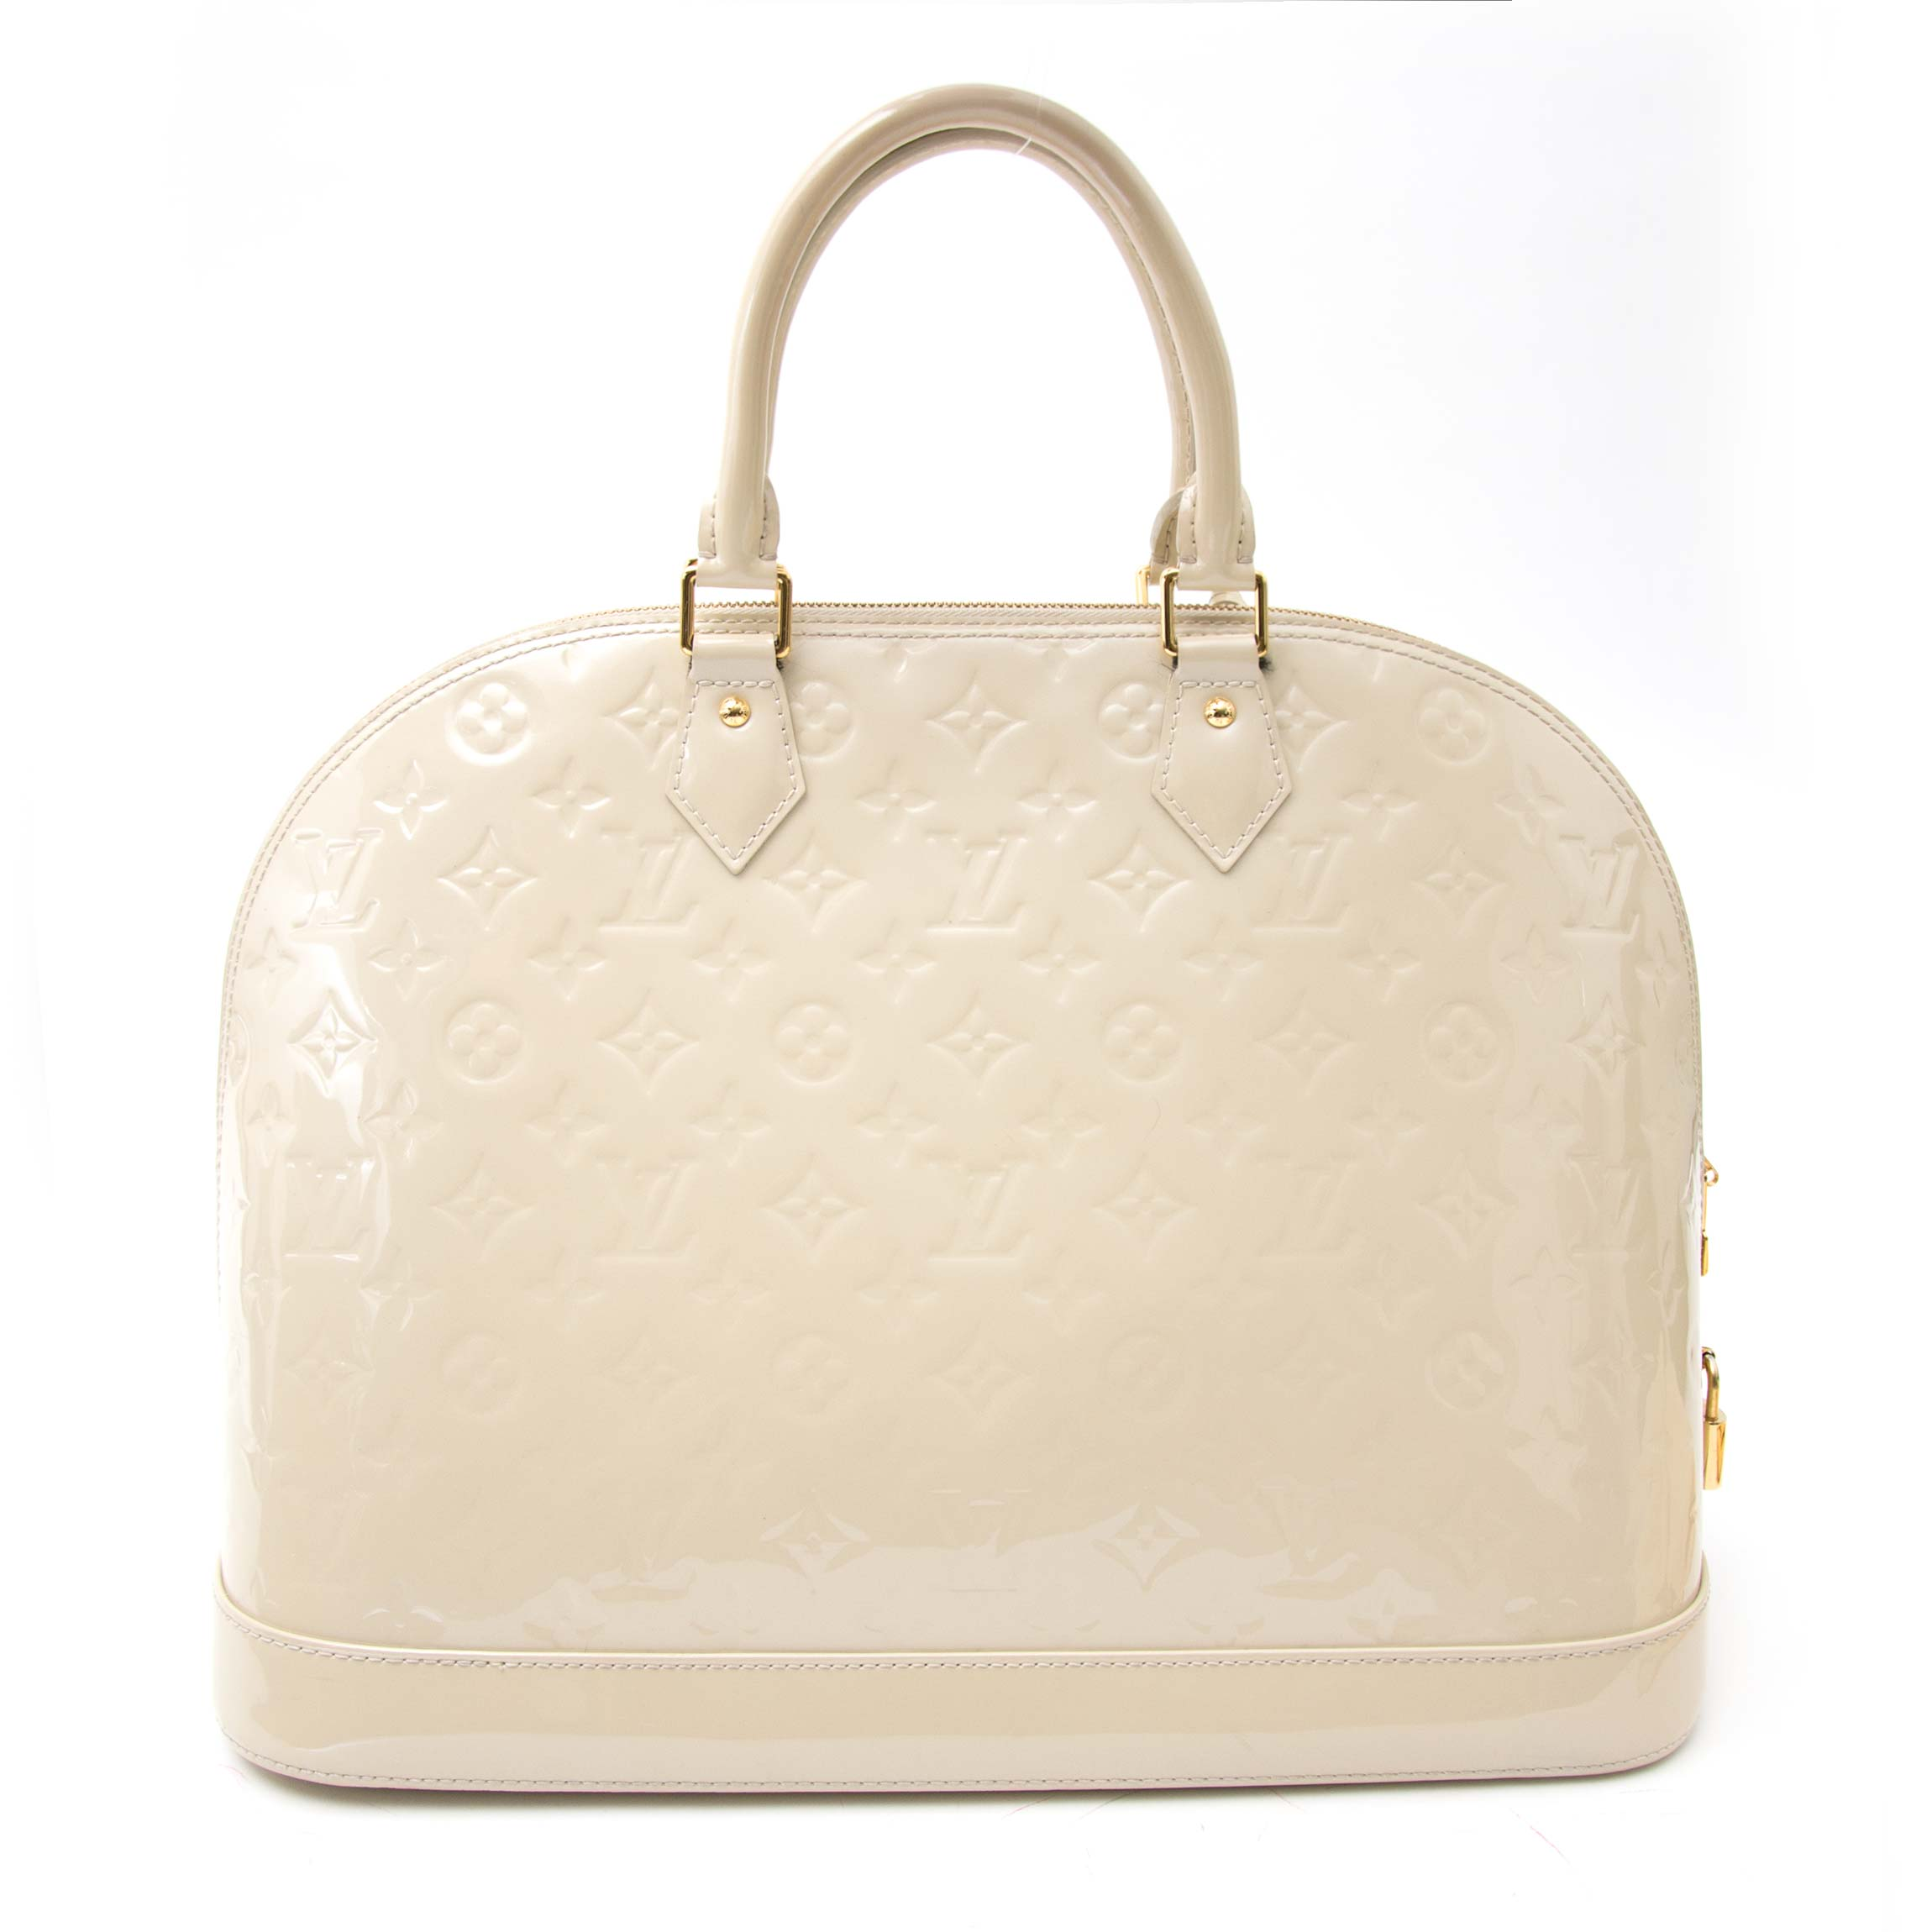 Shop the Louis Vuitton Alma Vernis right now www.labellov.com, the practical everyday bag, Labellov ships worldwide.